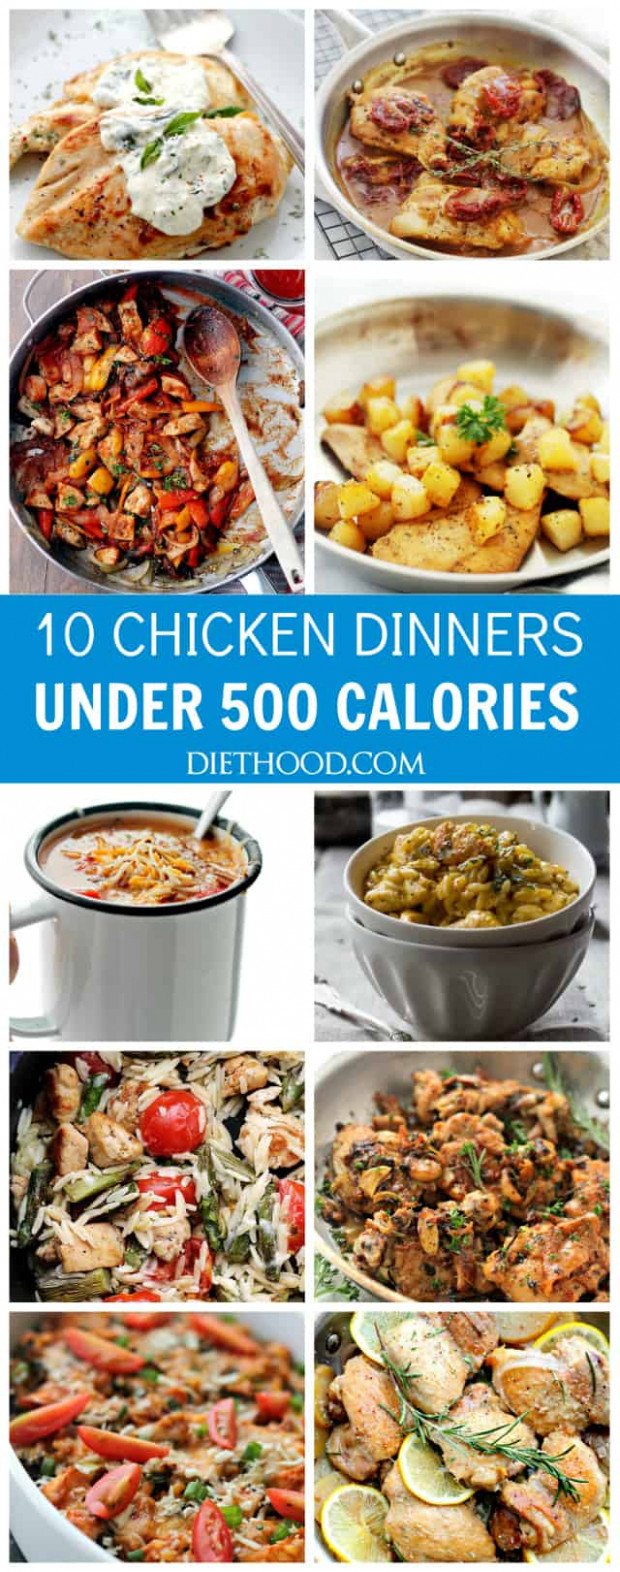 Ten Chicken Dinners Under 10 Calories | Diethood - vegetarian recipes under 500 calories